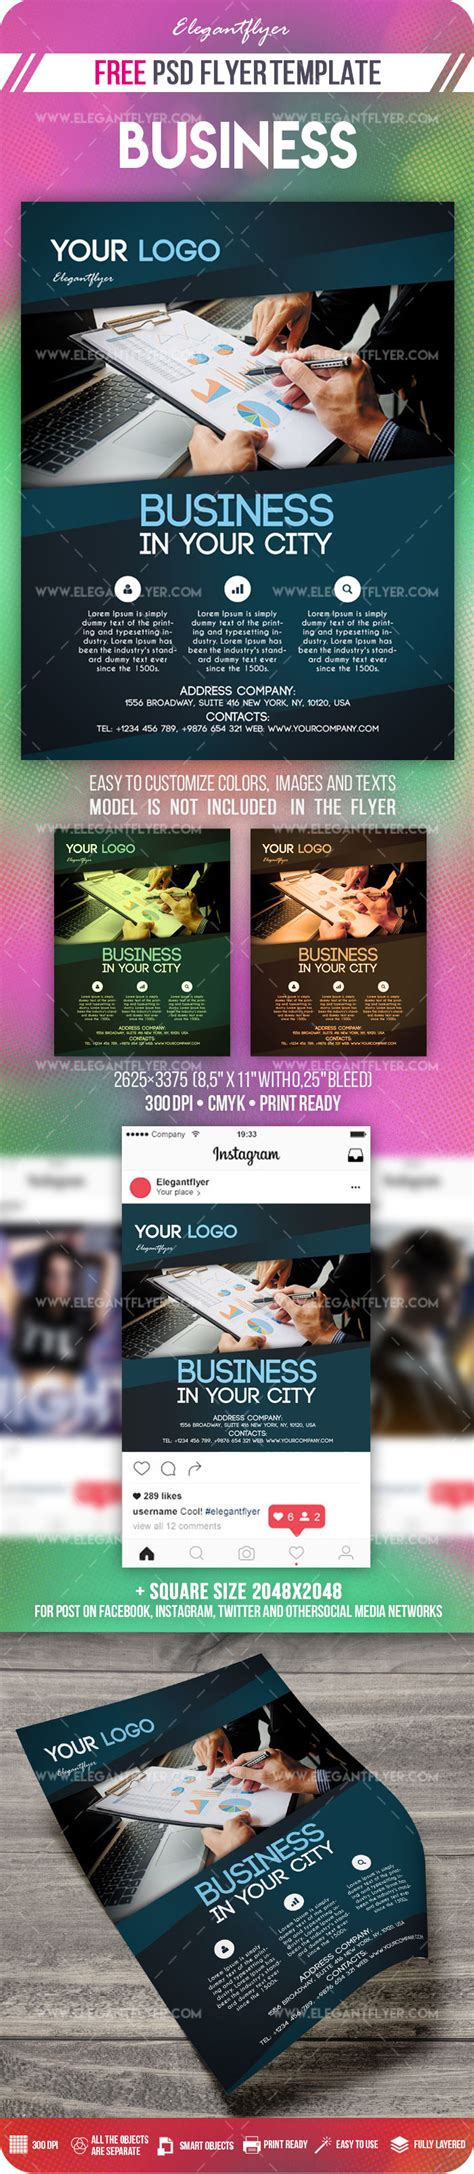 Business Free Flyer Psd Template Instagram Template By Elegantflyer Instagram Ad Template Psd